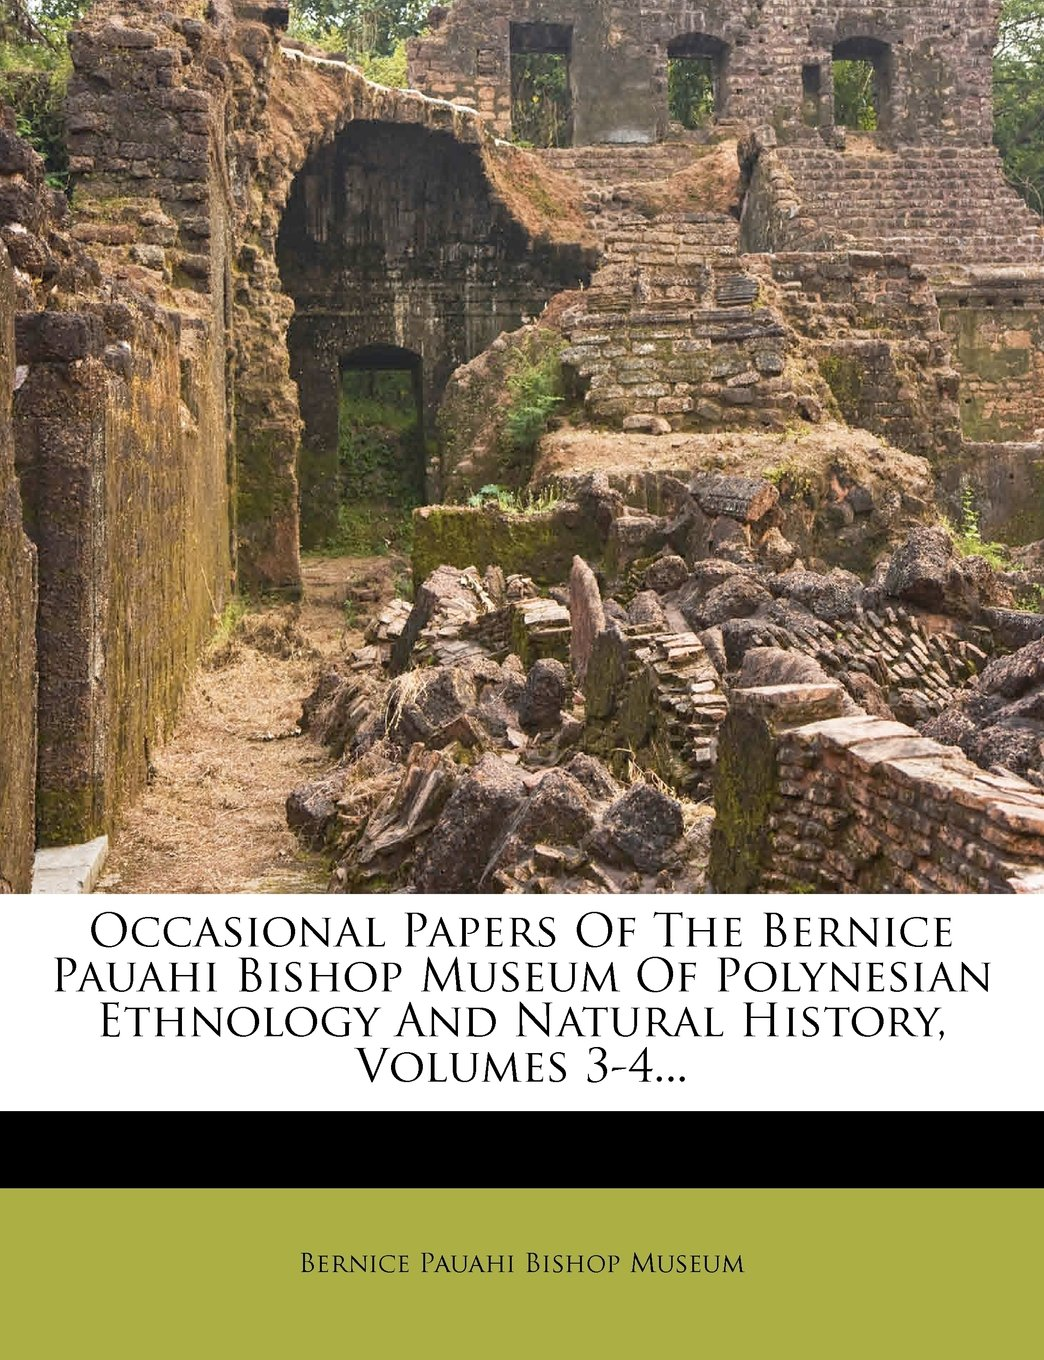 Download Occasional Papers Of The Bernice Pauahi Bishop Museum Of Polynesian Ethnology And Natural History, Volumes 3-4... PDF